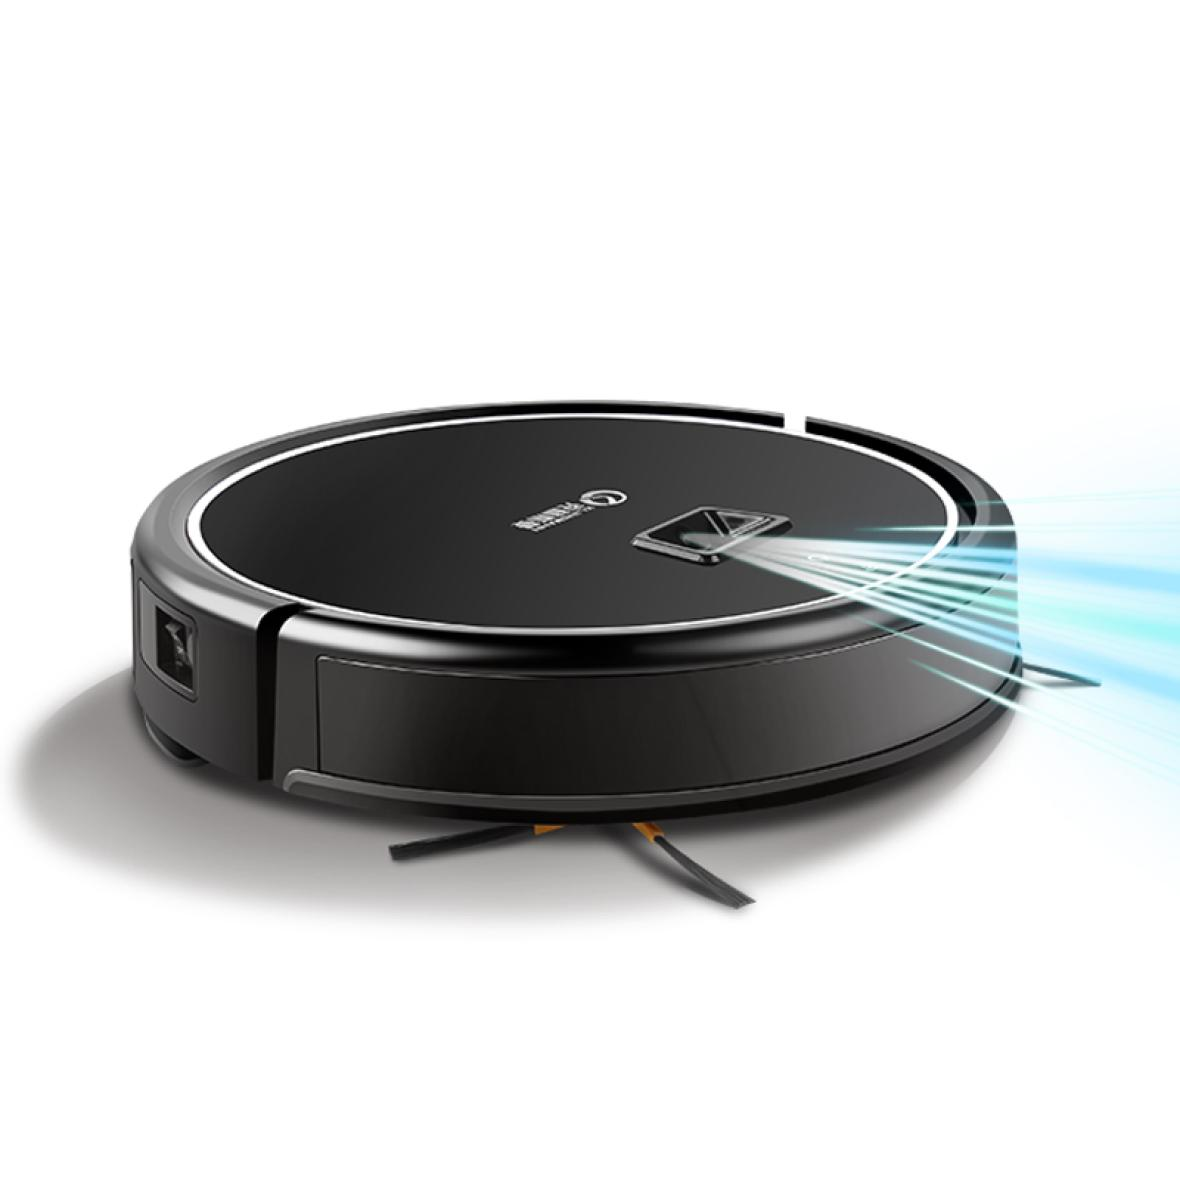 How to clean the Top Model Robot Cleaner